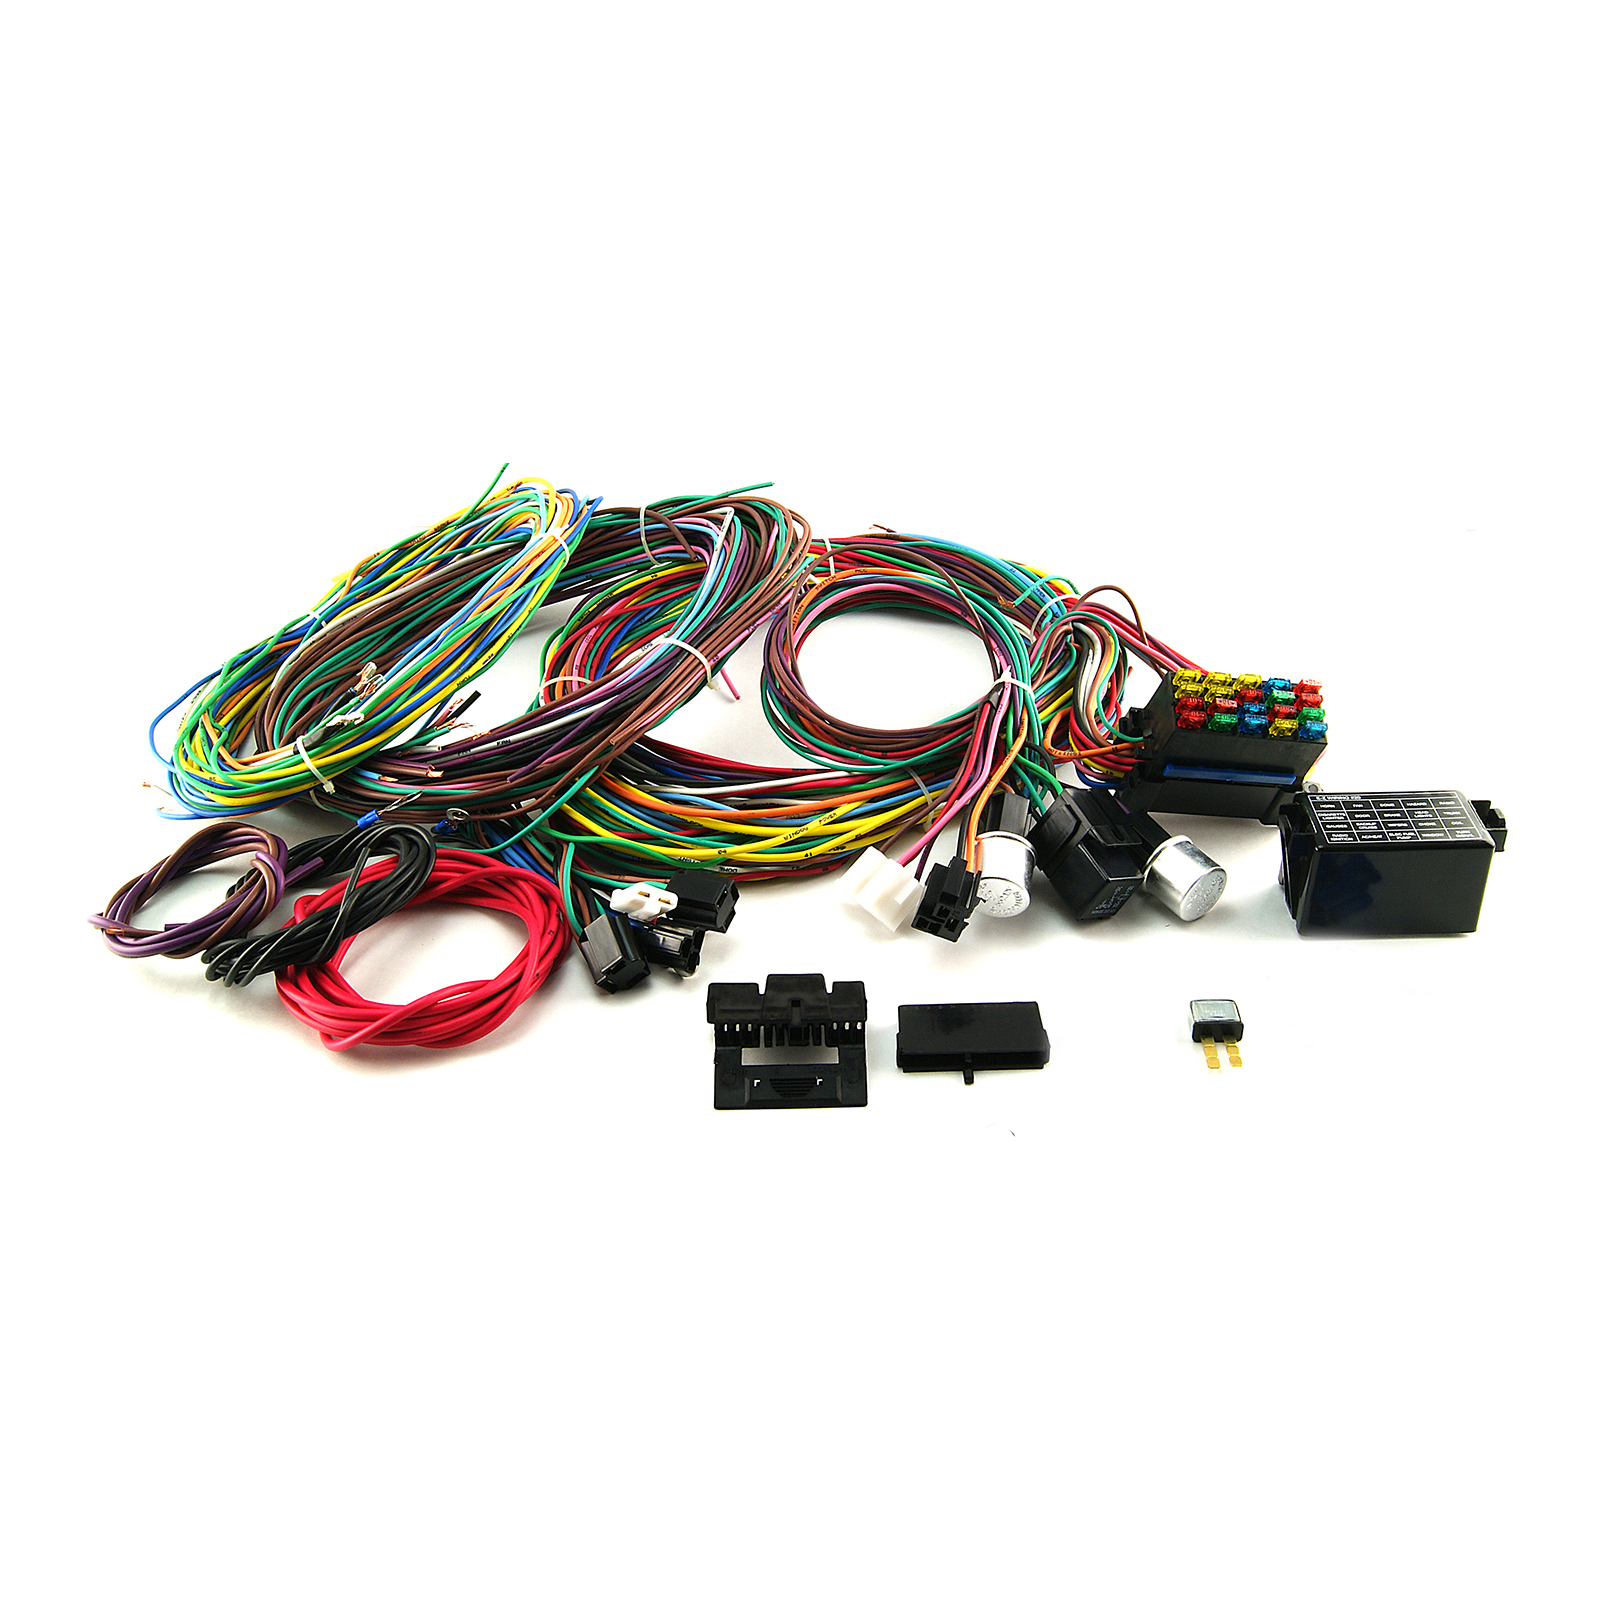 Universal Automobile Wiring Harness : Universal circuit wiring harness kit street rod hot